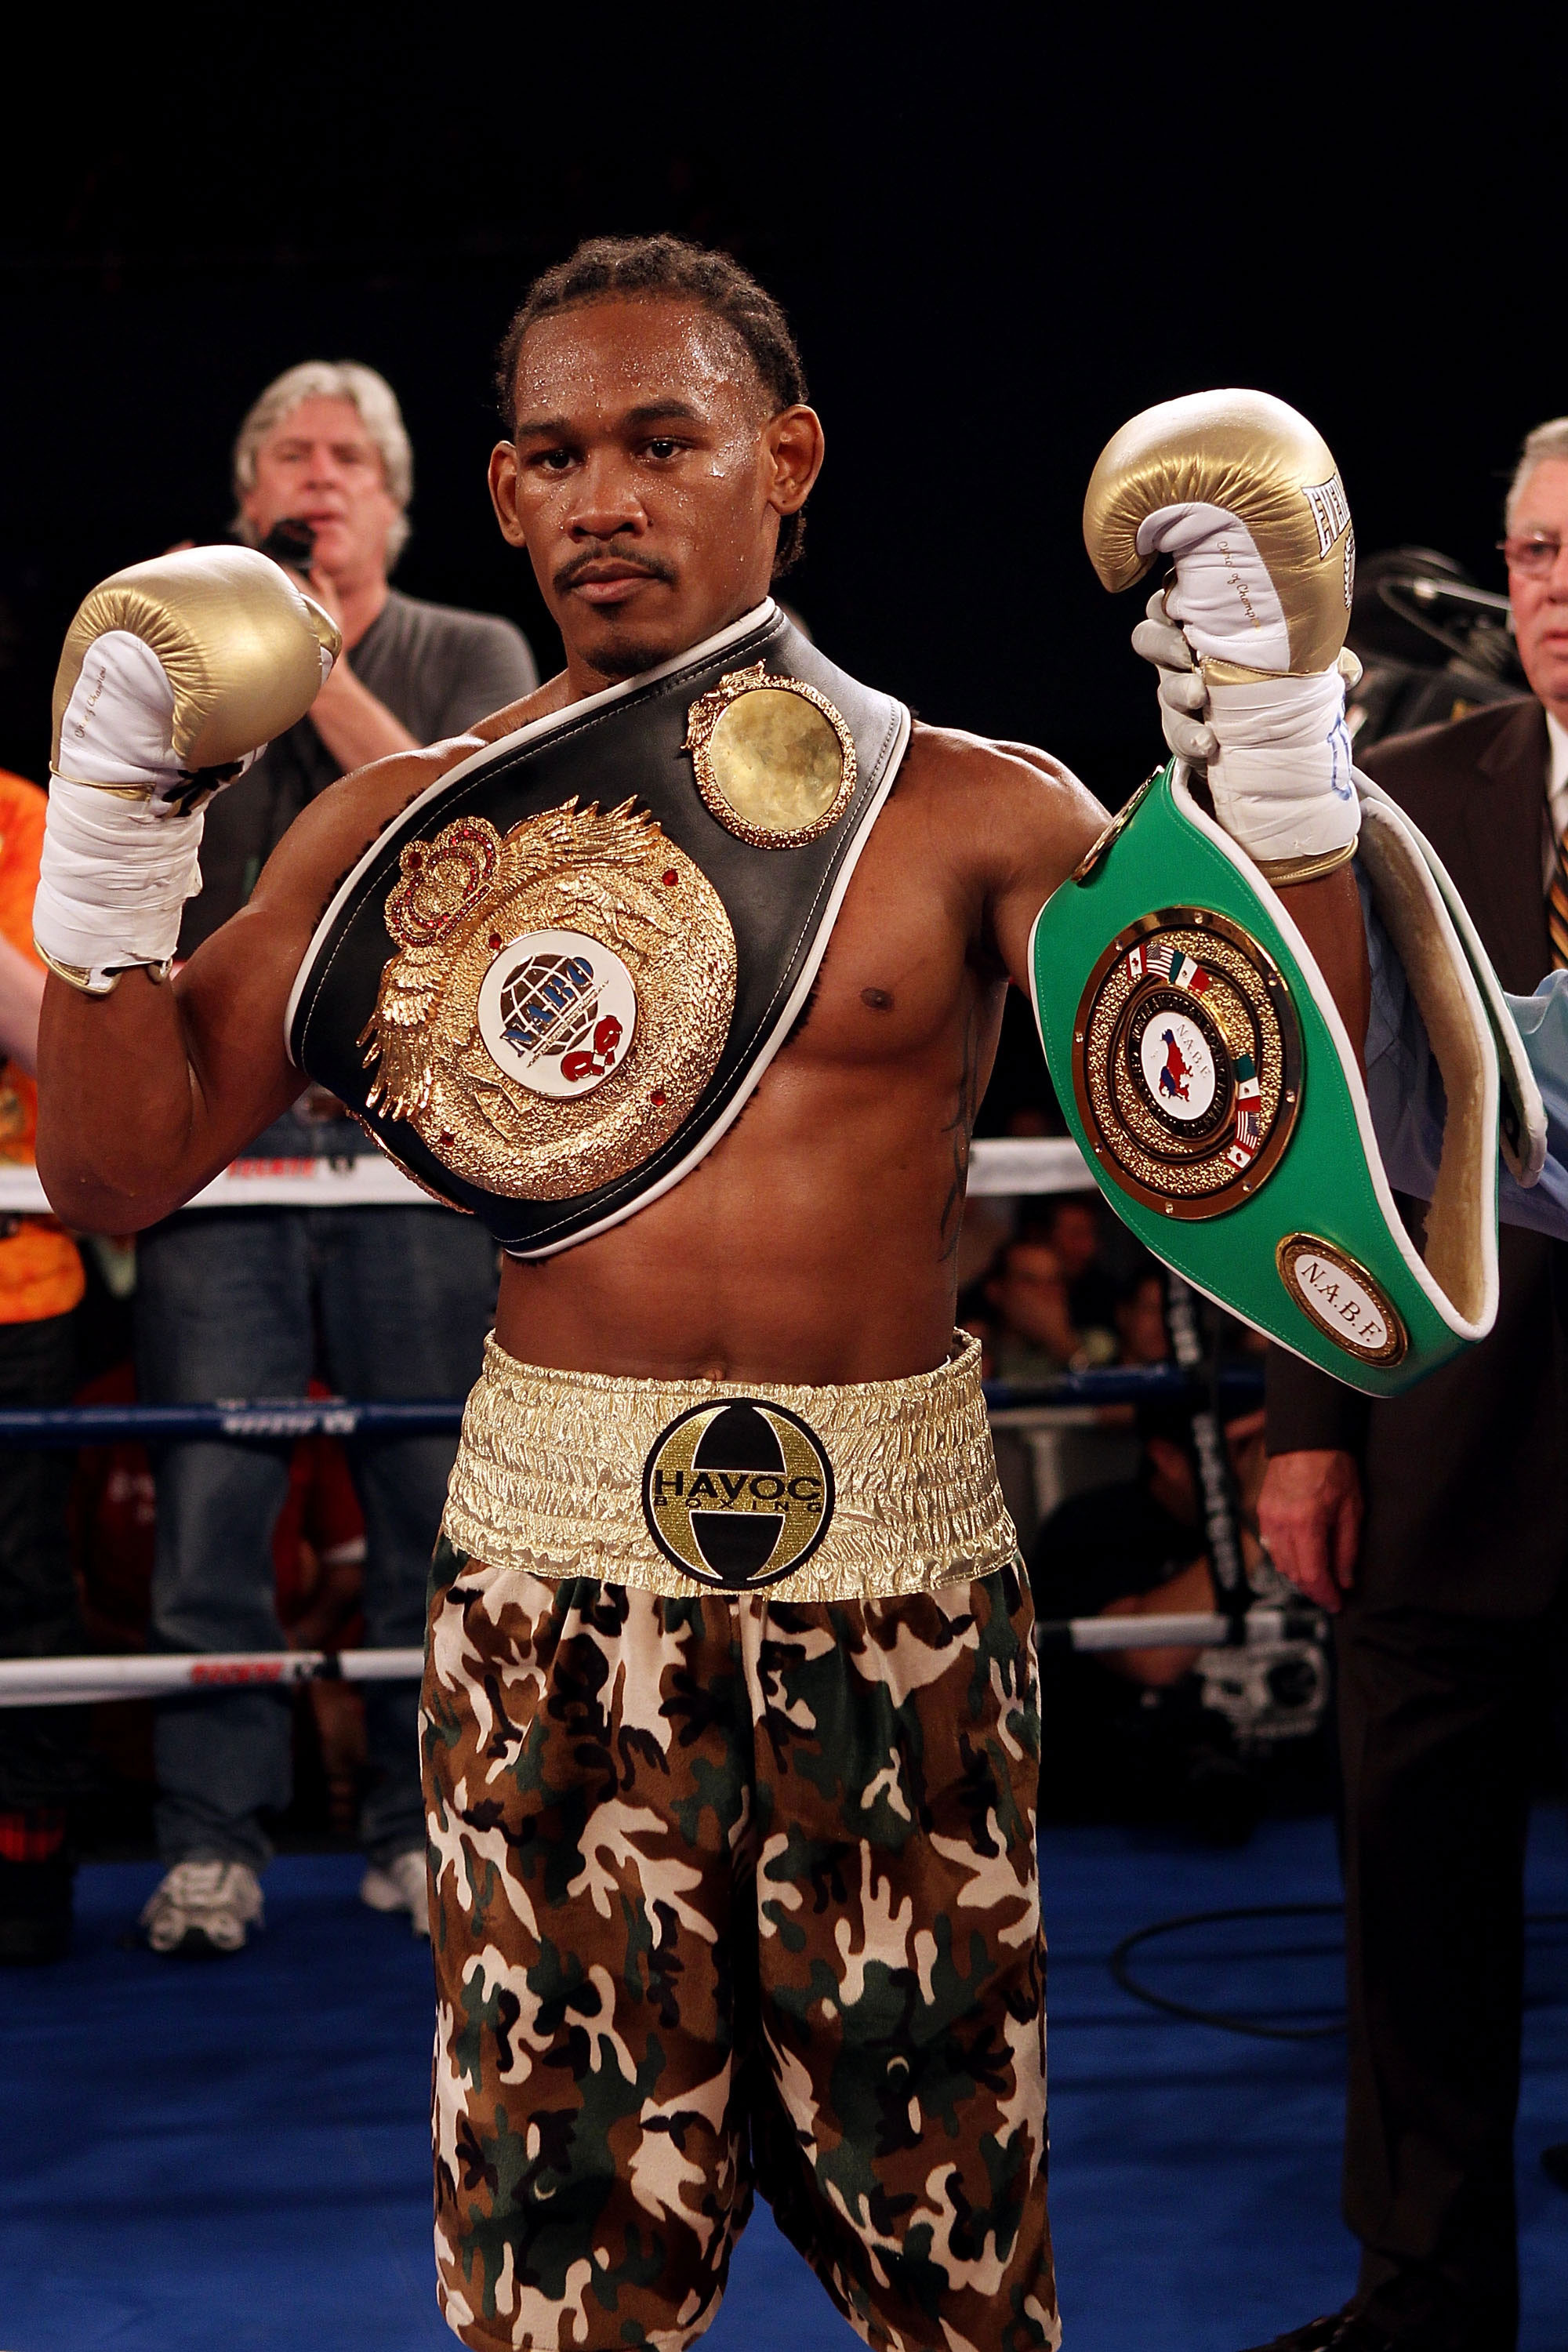 Daniel Jacobs celebrates after beating Juan Astorga by TKO for the NABO supermiddleweight title. (Getty)